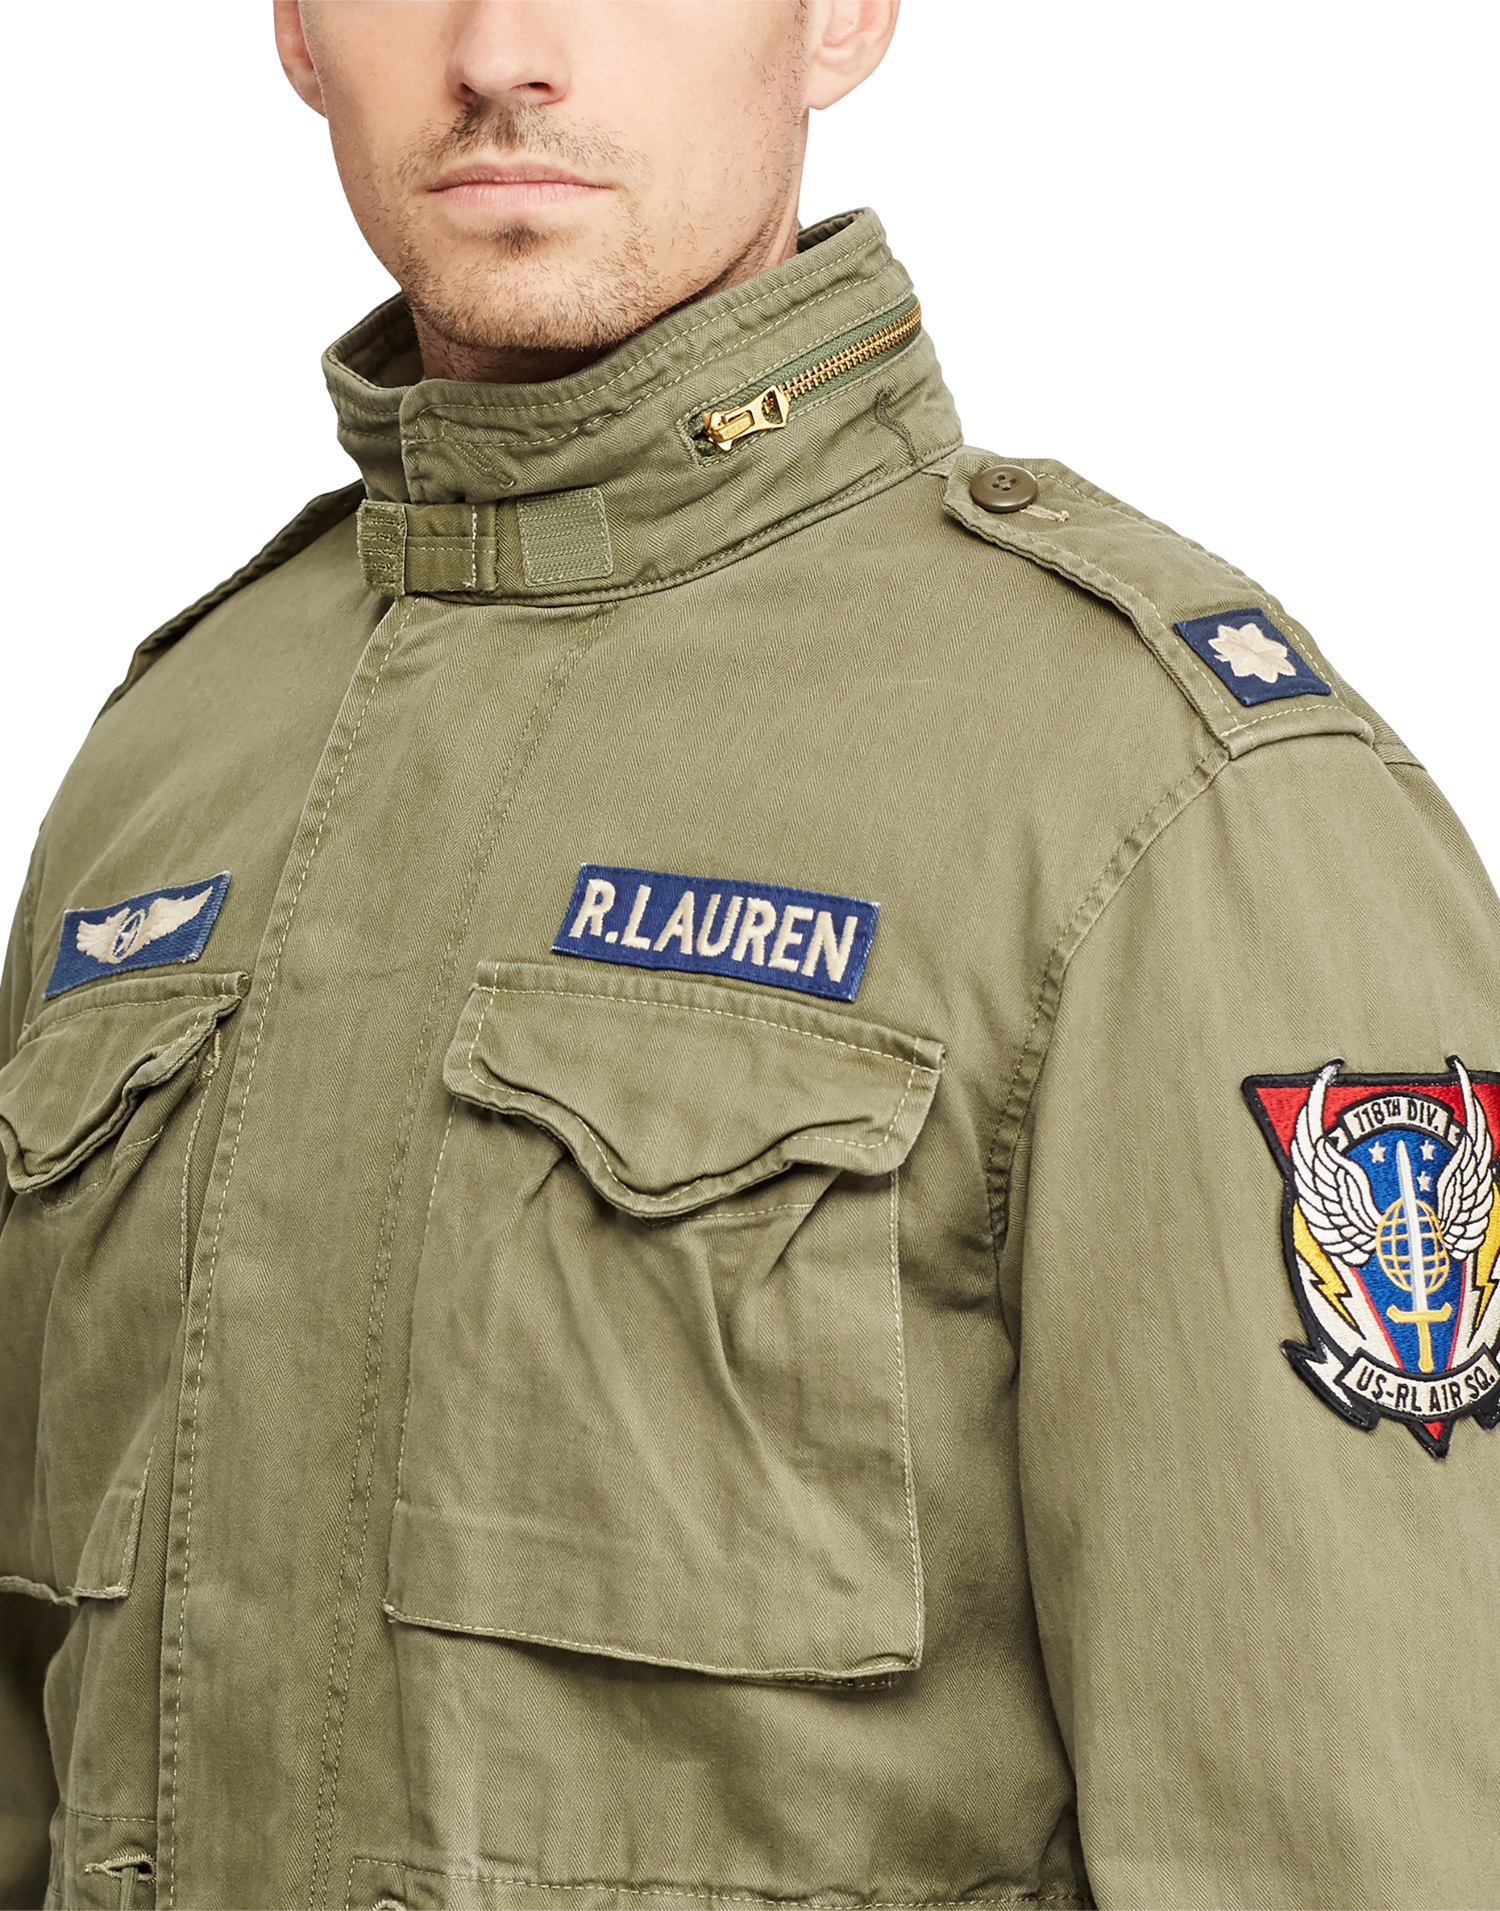 Ralph Lauren Cotton Twill Field Jacket Olive W Patches